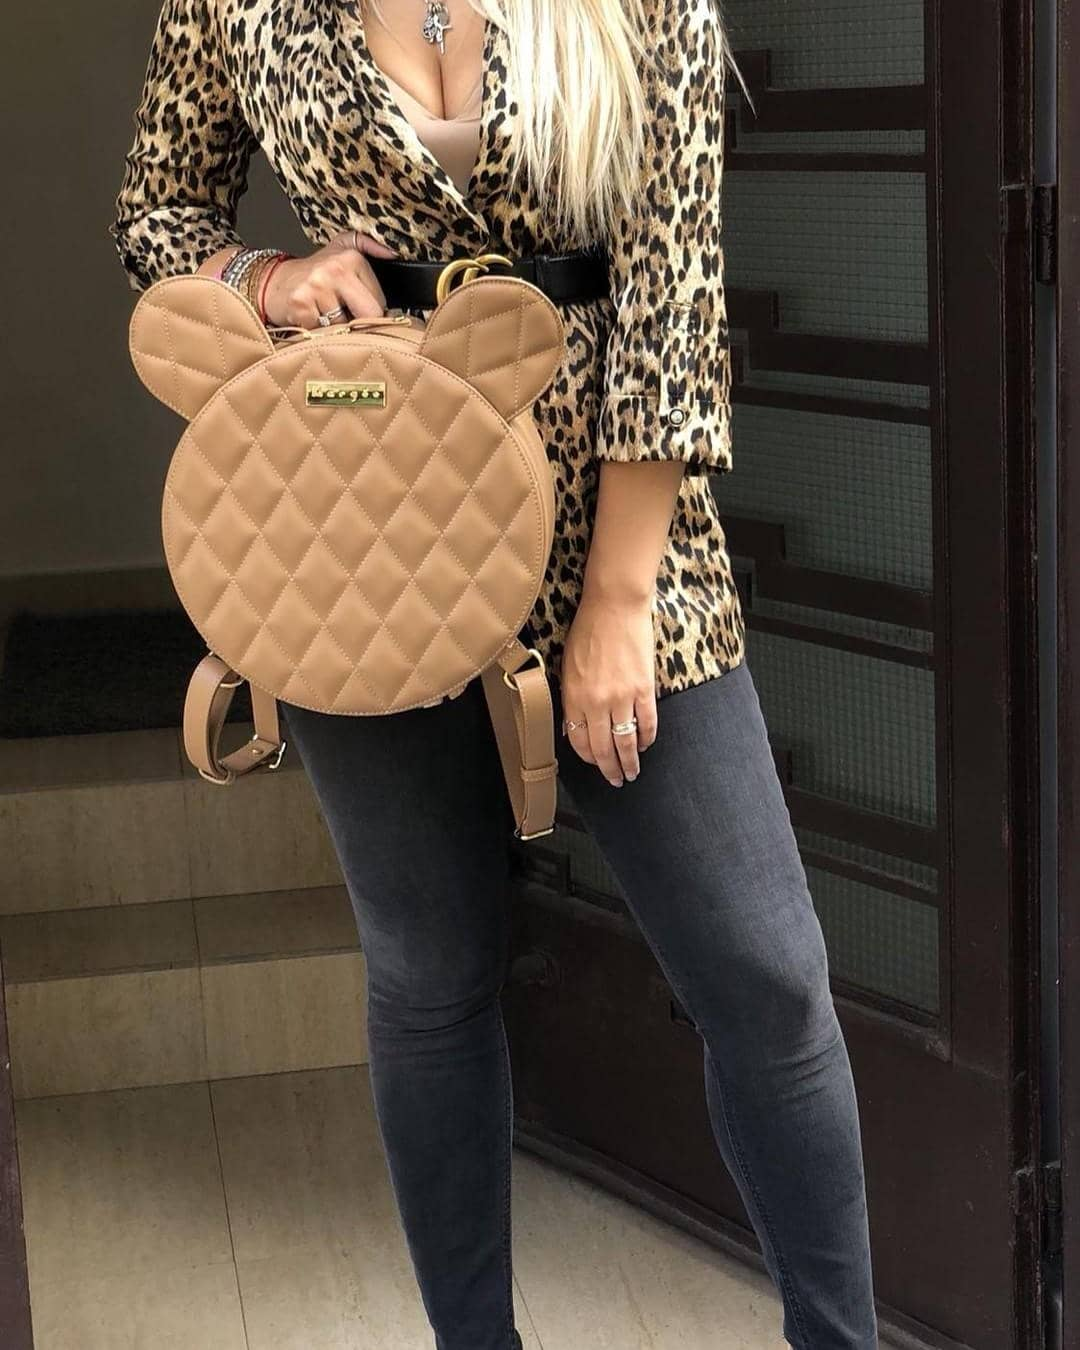 Leopard Print Blazer With Charcoal Skinny Jeans And Rounded Backpack For Spring 2019